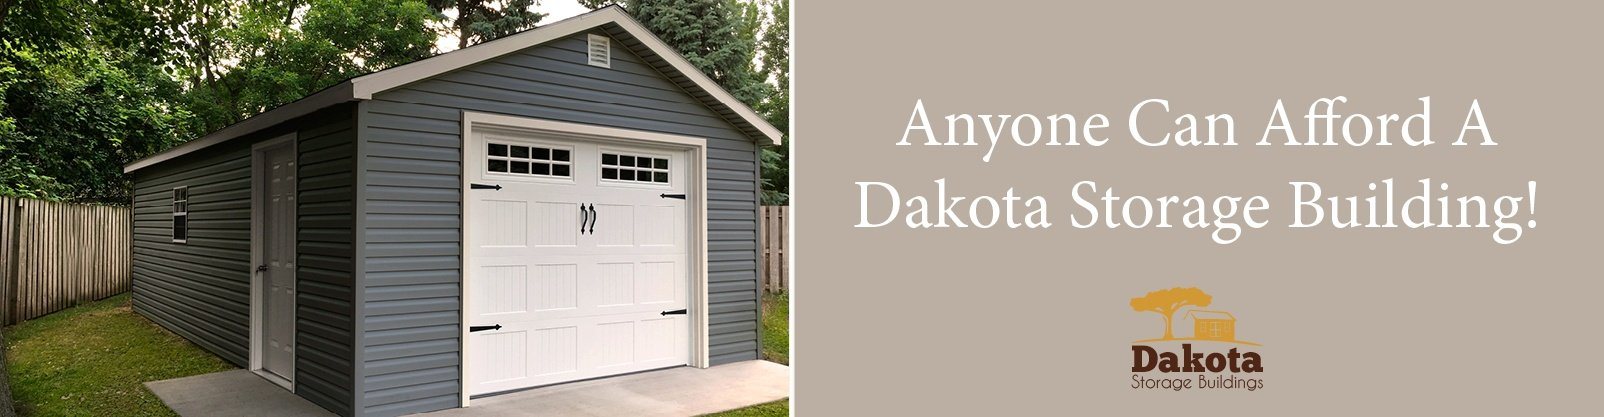 Anyone Can Afford A Dakota Storage Building